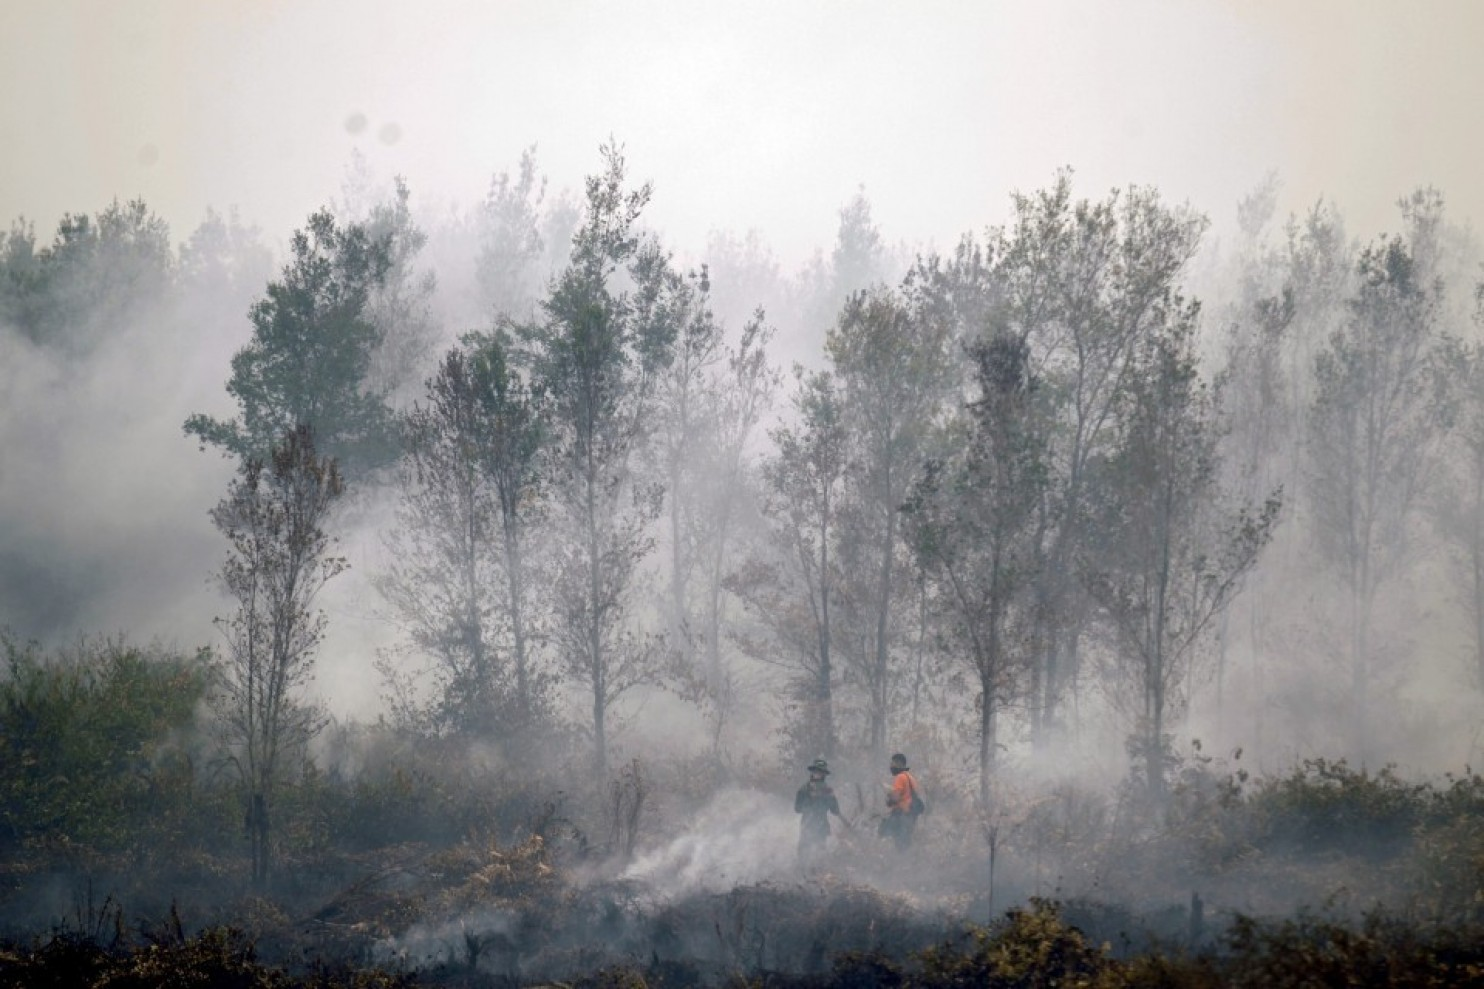 Indonesian officers put out forest fires in a village in Central Kalimantan province in September 2015. image: Bagus Indahono/European Pressphoto Agency